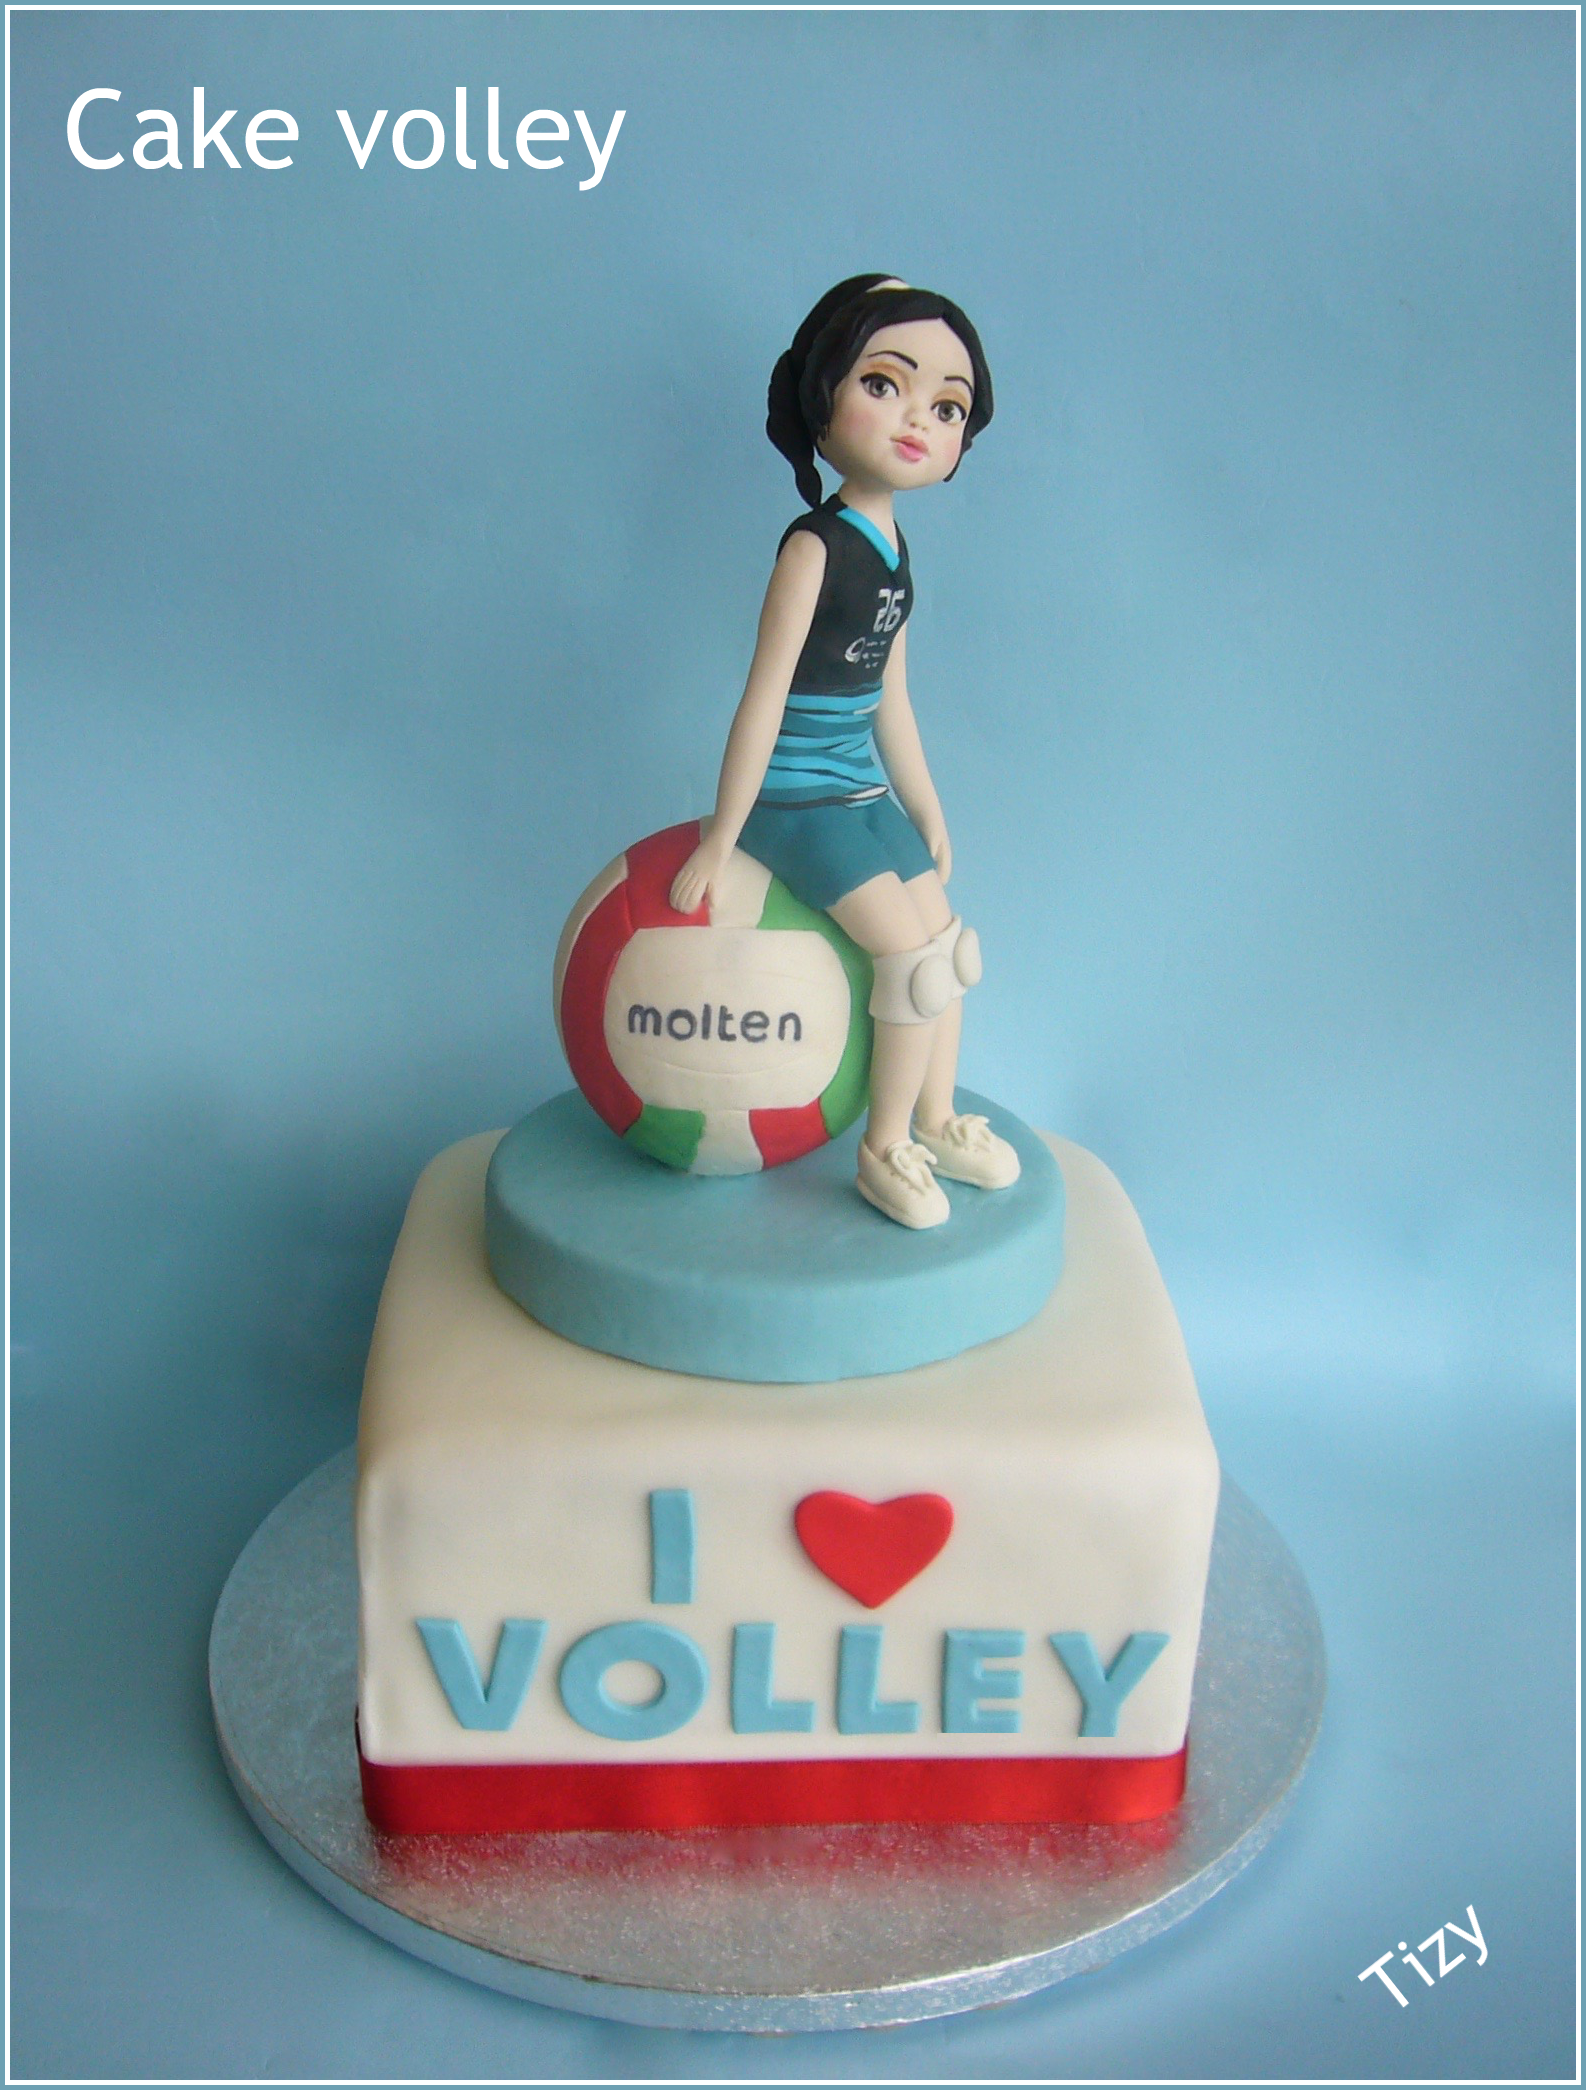 Cake Volley Volleyball Cakes Cake Girl Cakes